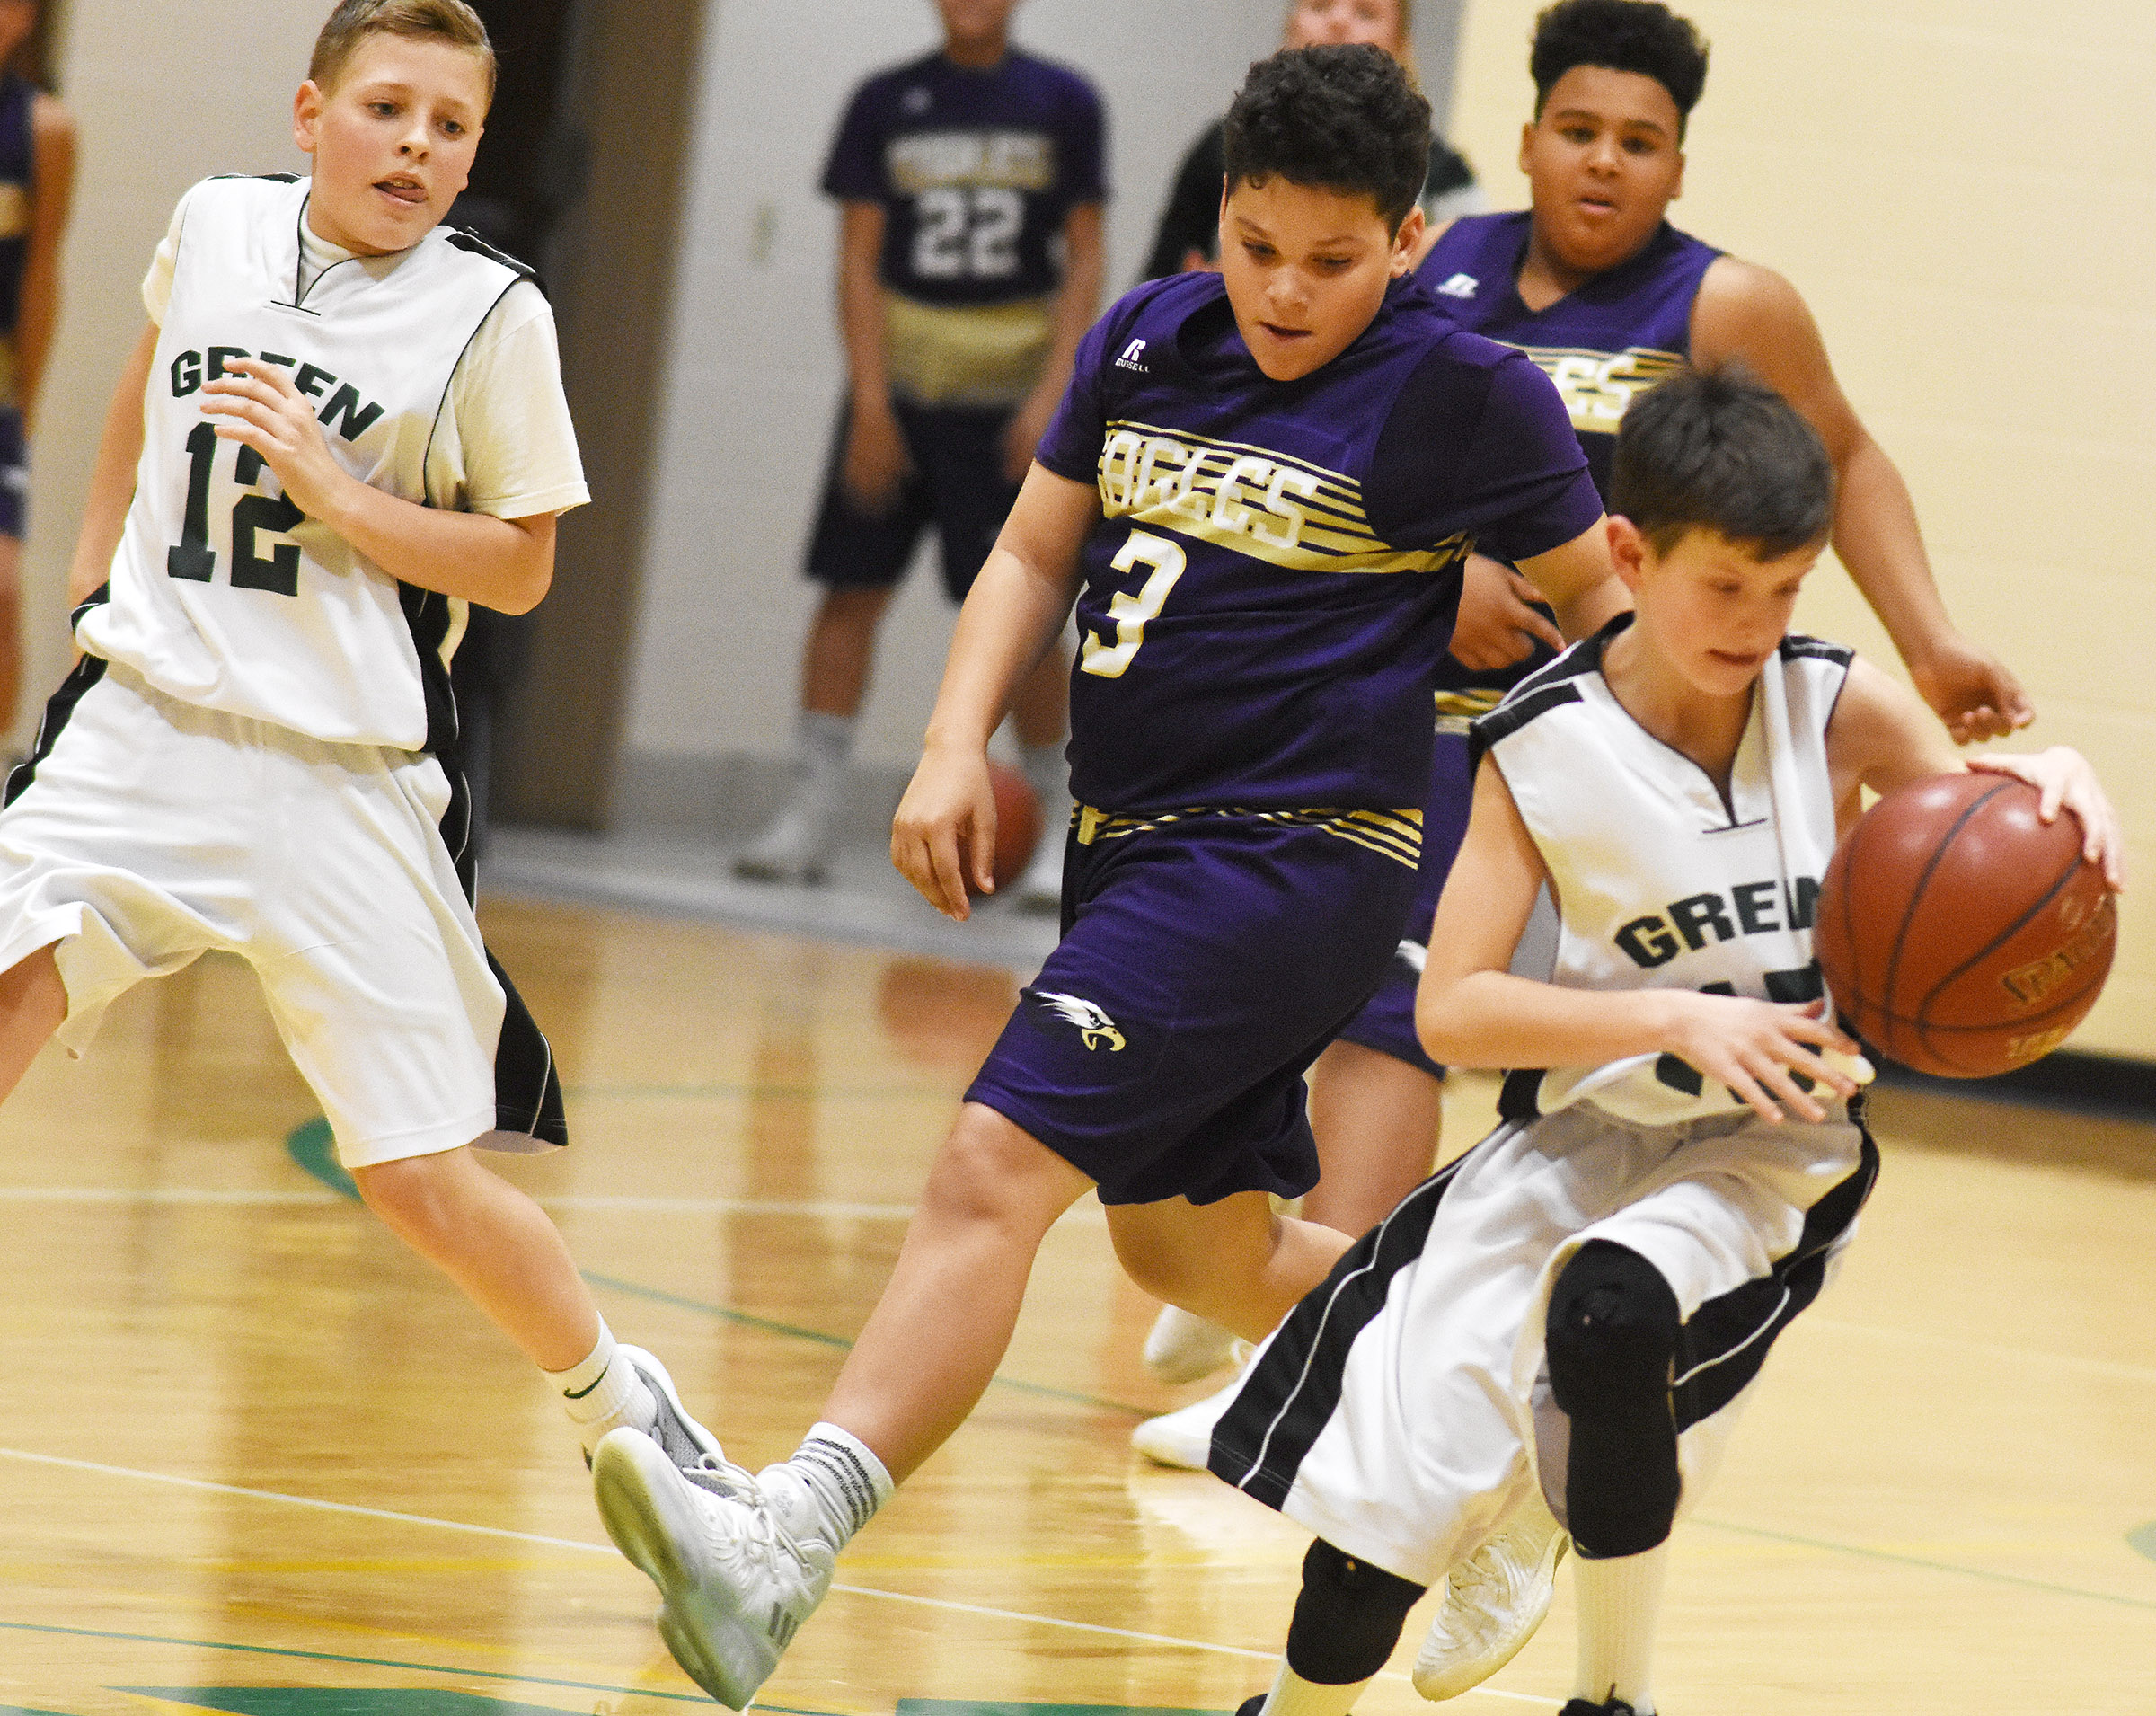 CMS seventh-grader Kaydon Taylor fights for the ball.